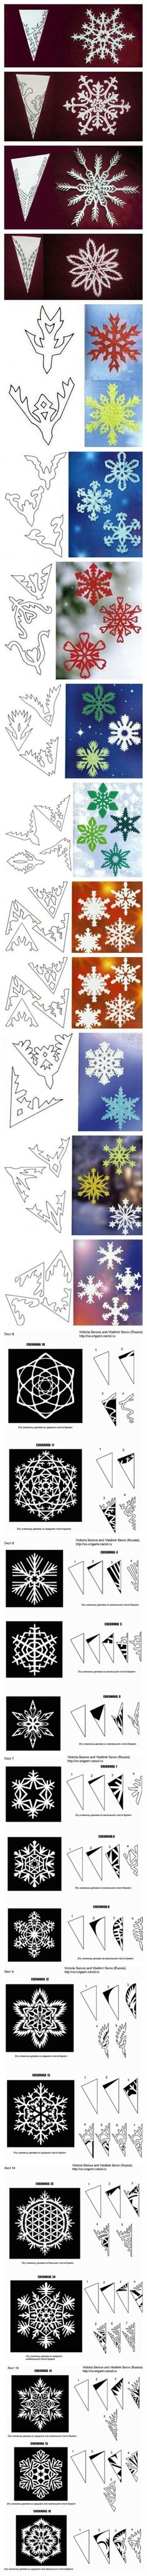 A guide to making awesome paper snowflakes. Definitely trying this out next Christmas :)